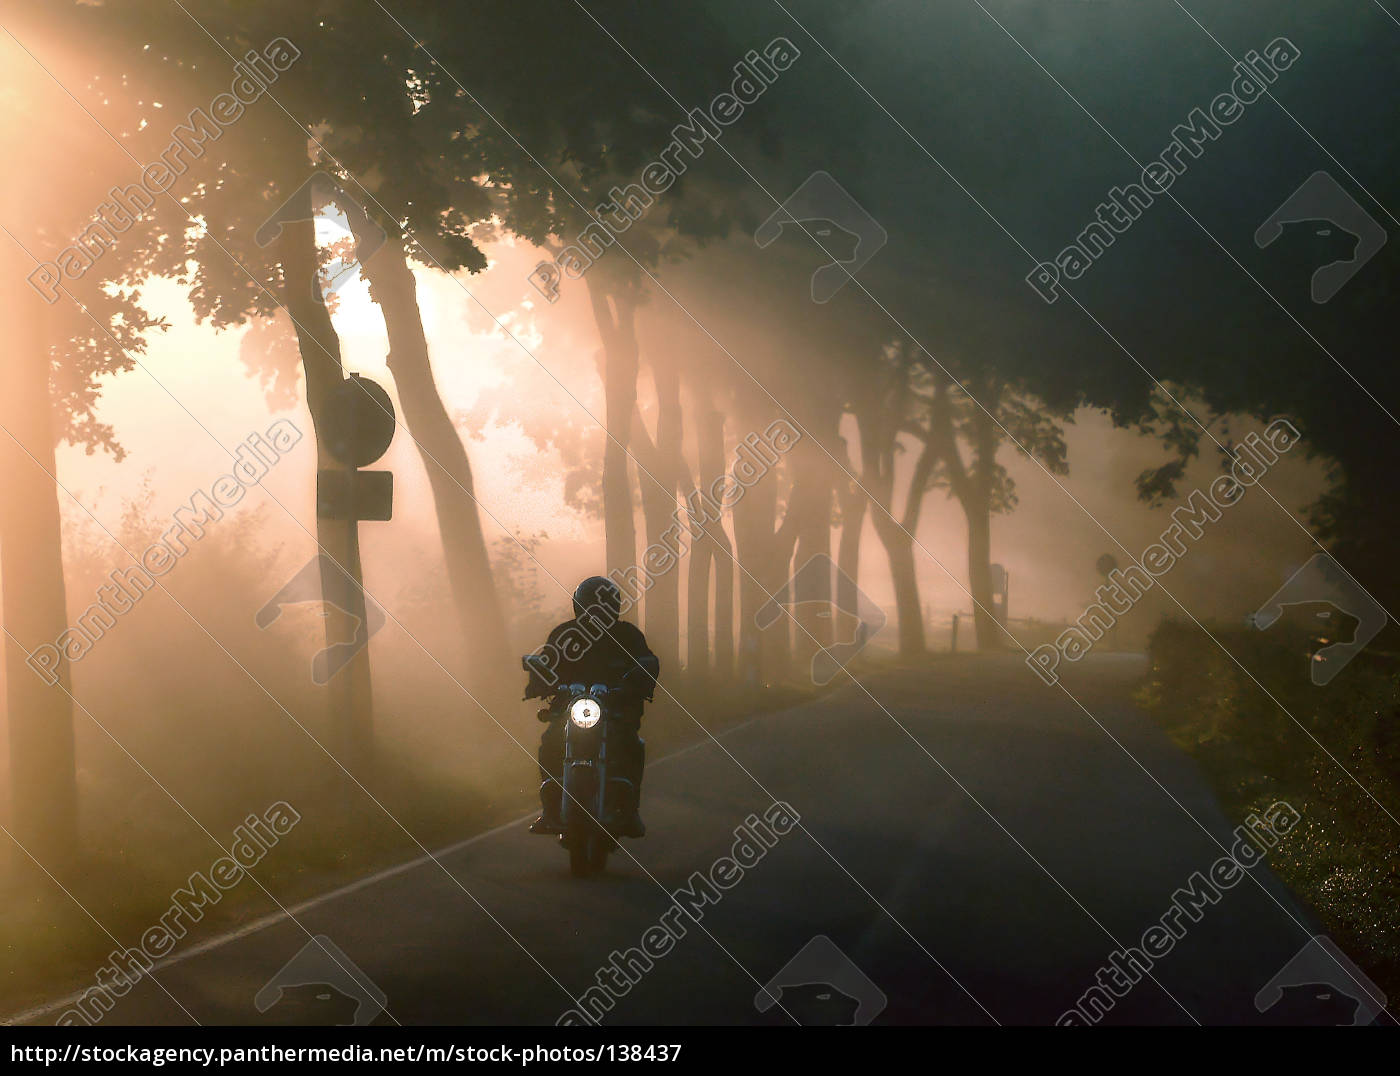 fog, light - 138437